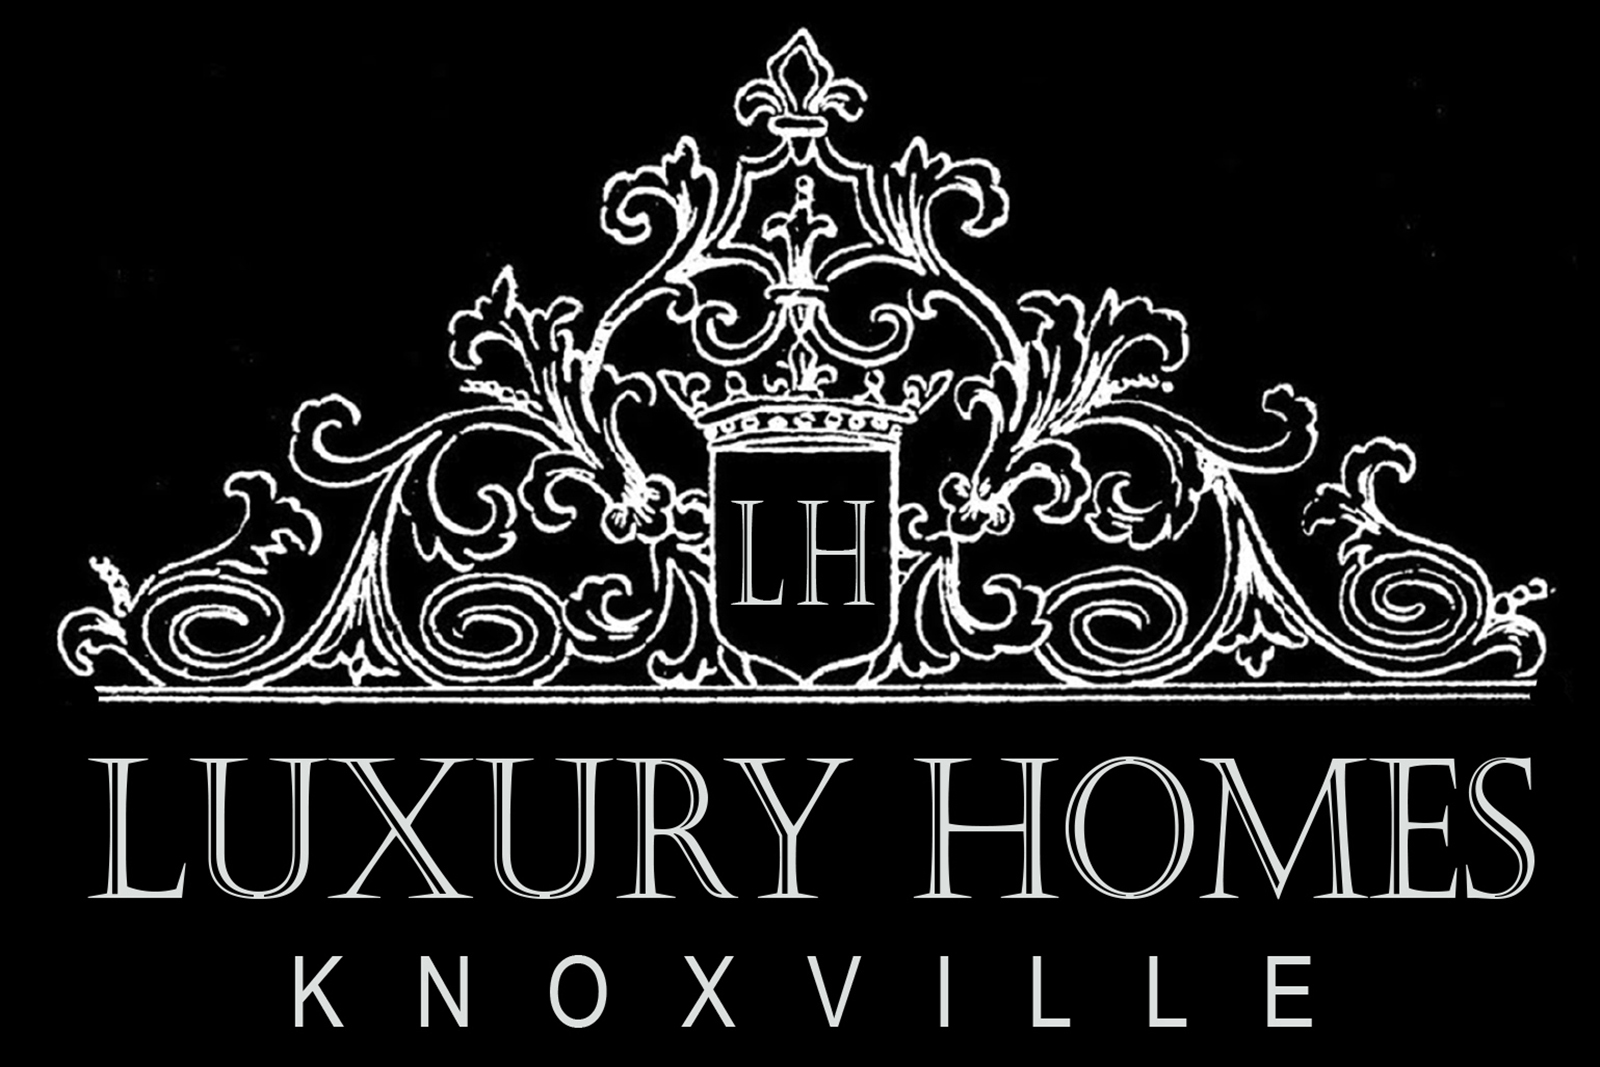 Luxury Homes of Knoxville